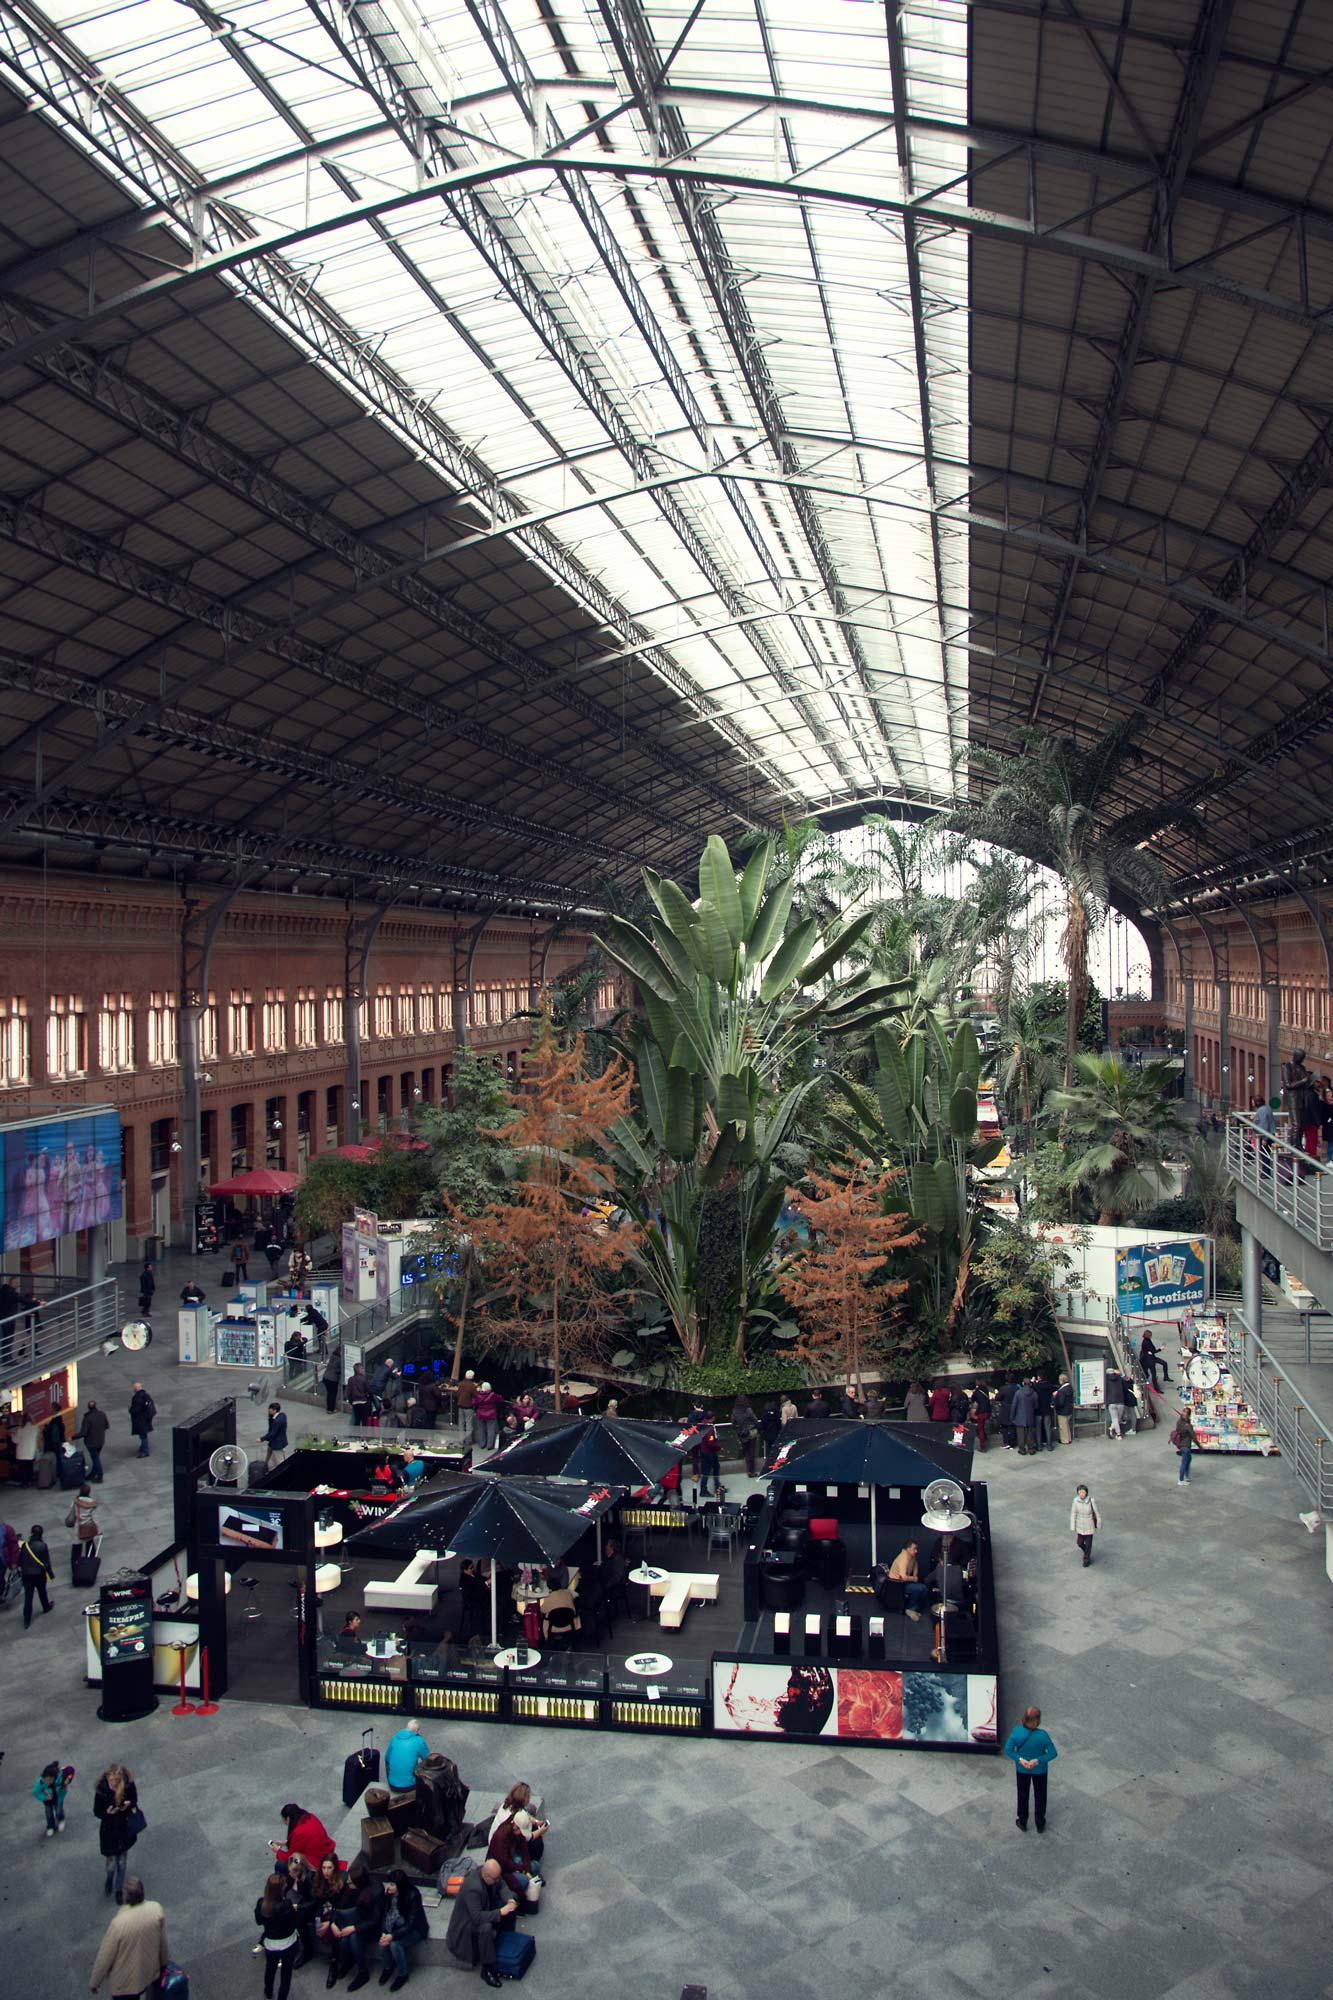 The Tropical Atrium in Madrid's railway station.